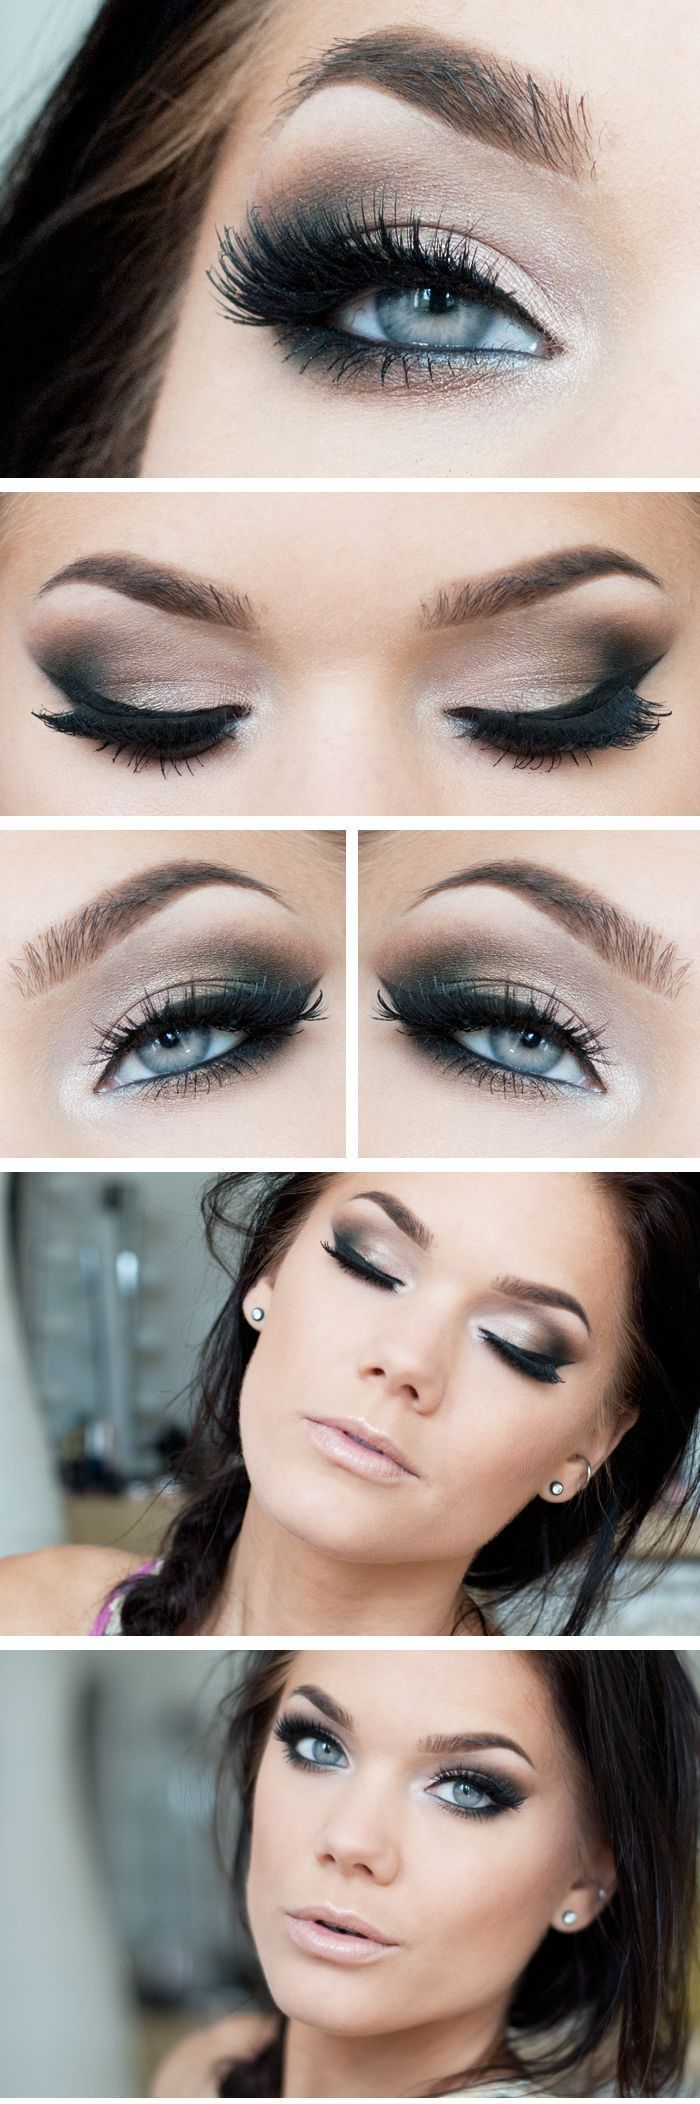 Arabic makeup as a way to emphasize its attractiveness and sexuality 20